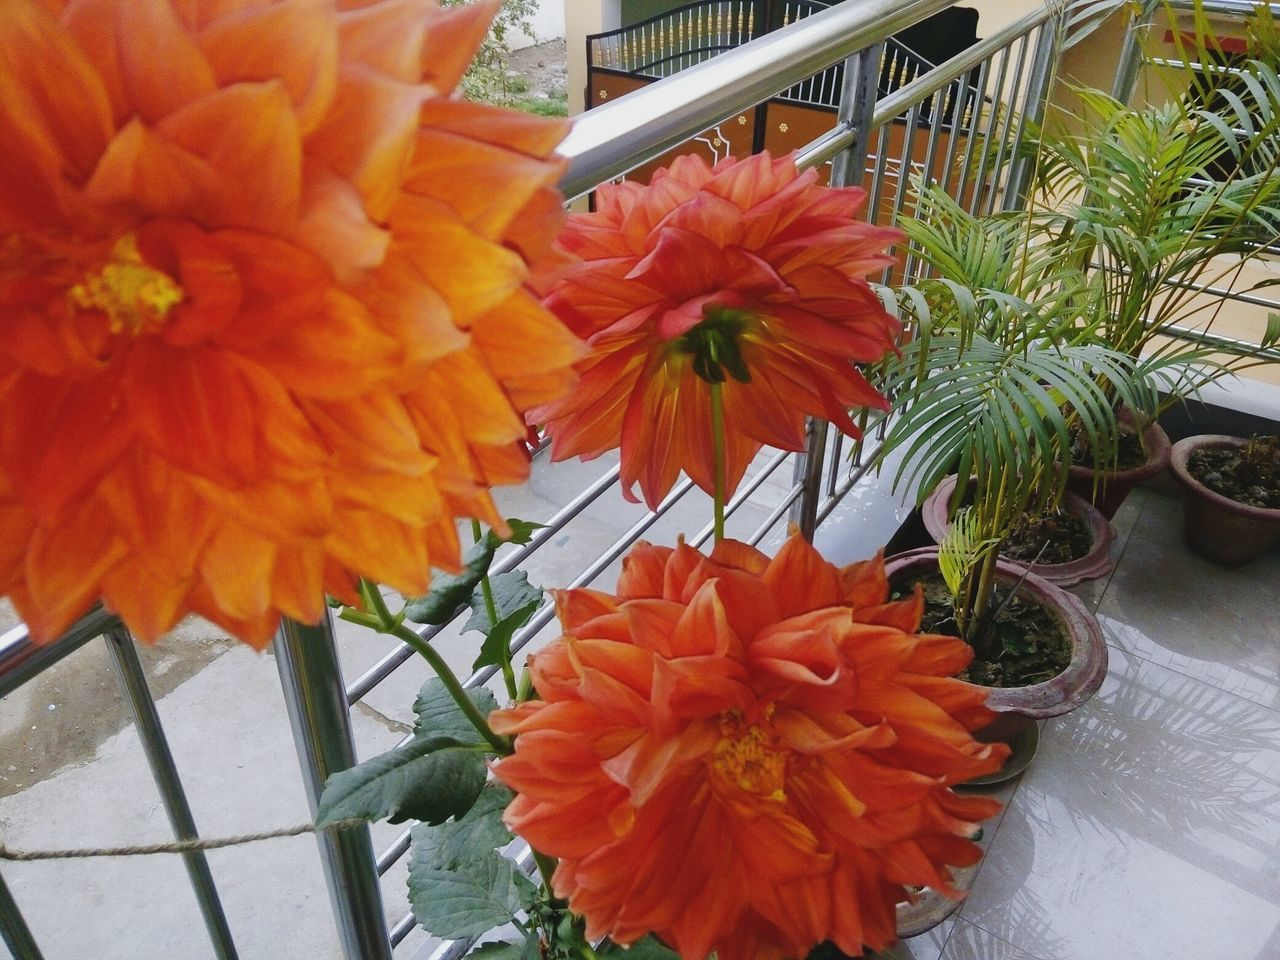 flower, orange color, freshness, fragility, beauty in nature, petal, flower head, nature, growth, day, close-up, plant, no people, outdoors, blooming, greenhouse